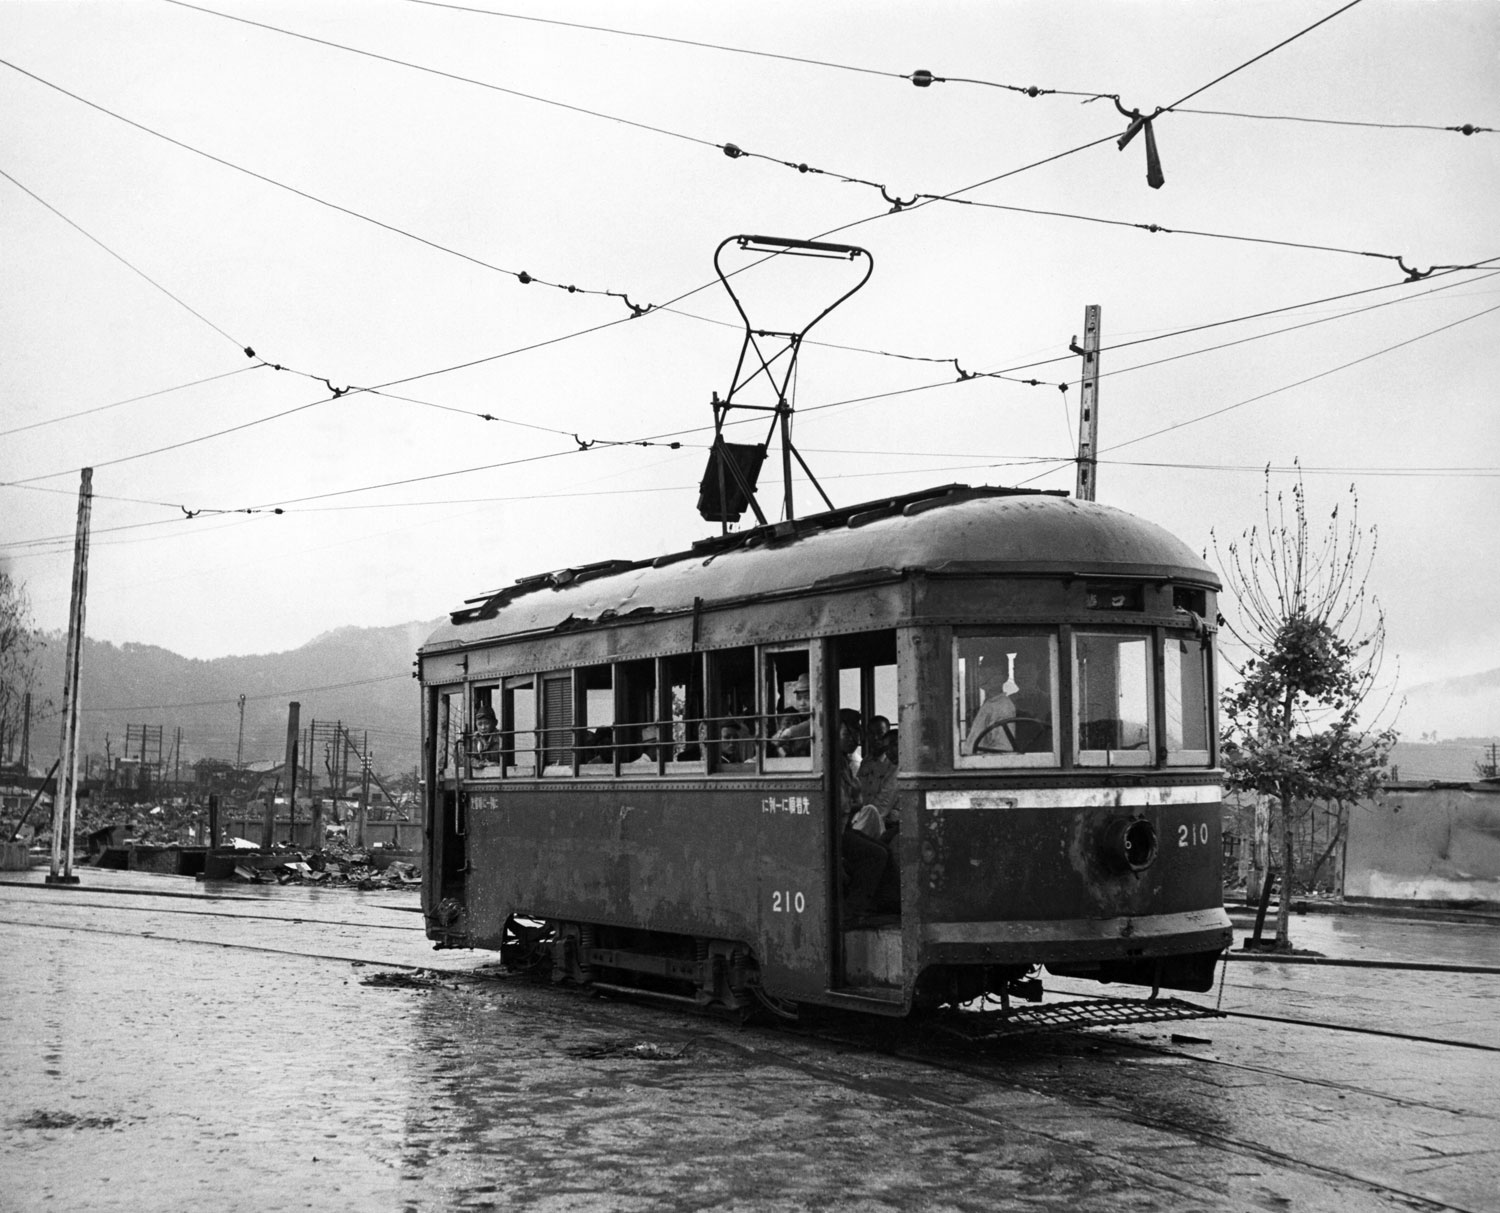 <b>Not published in LIFE.</b> Hiroshima streetcar, September, 1945.